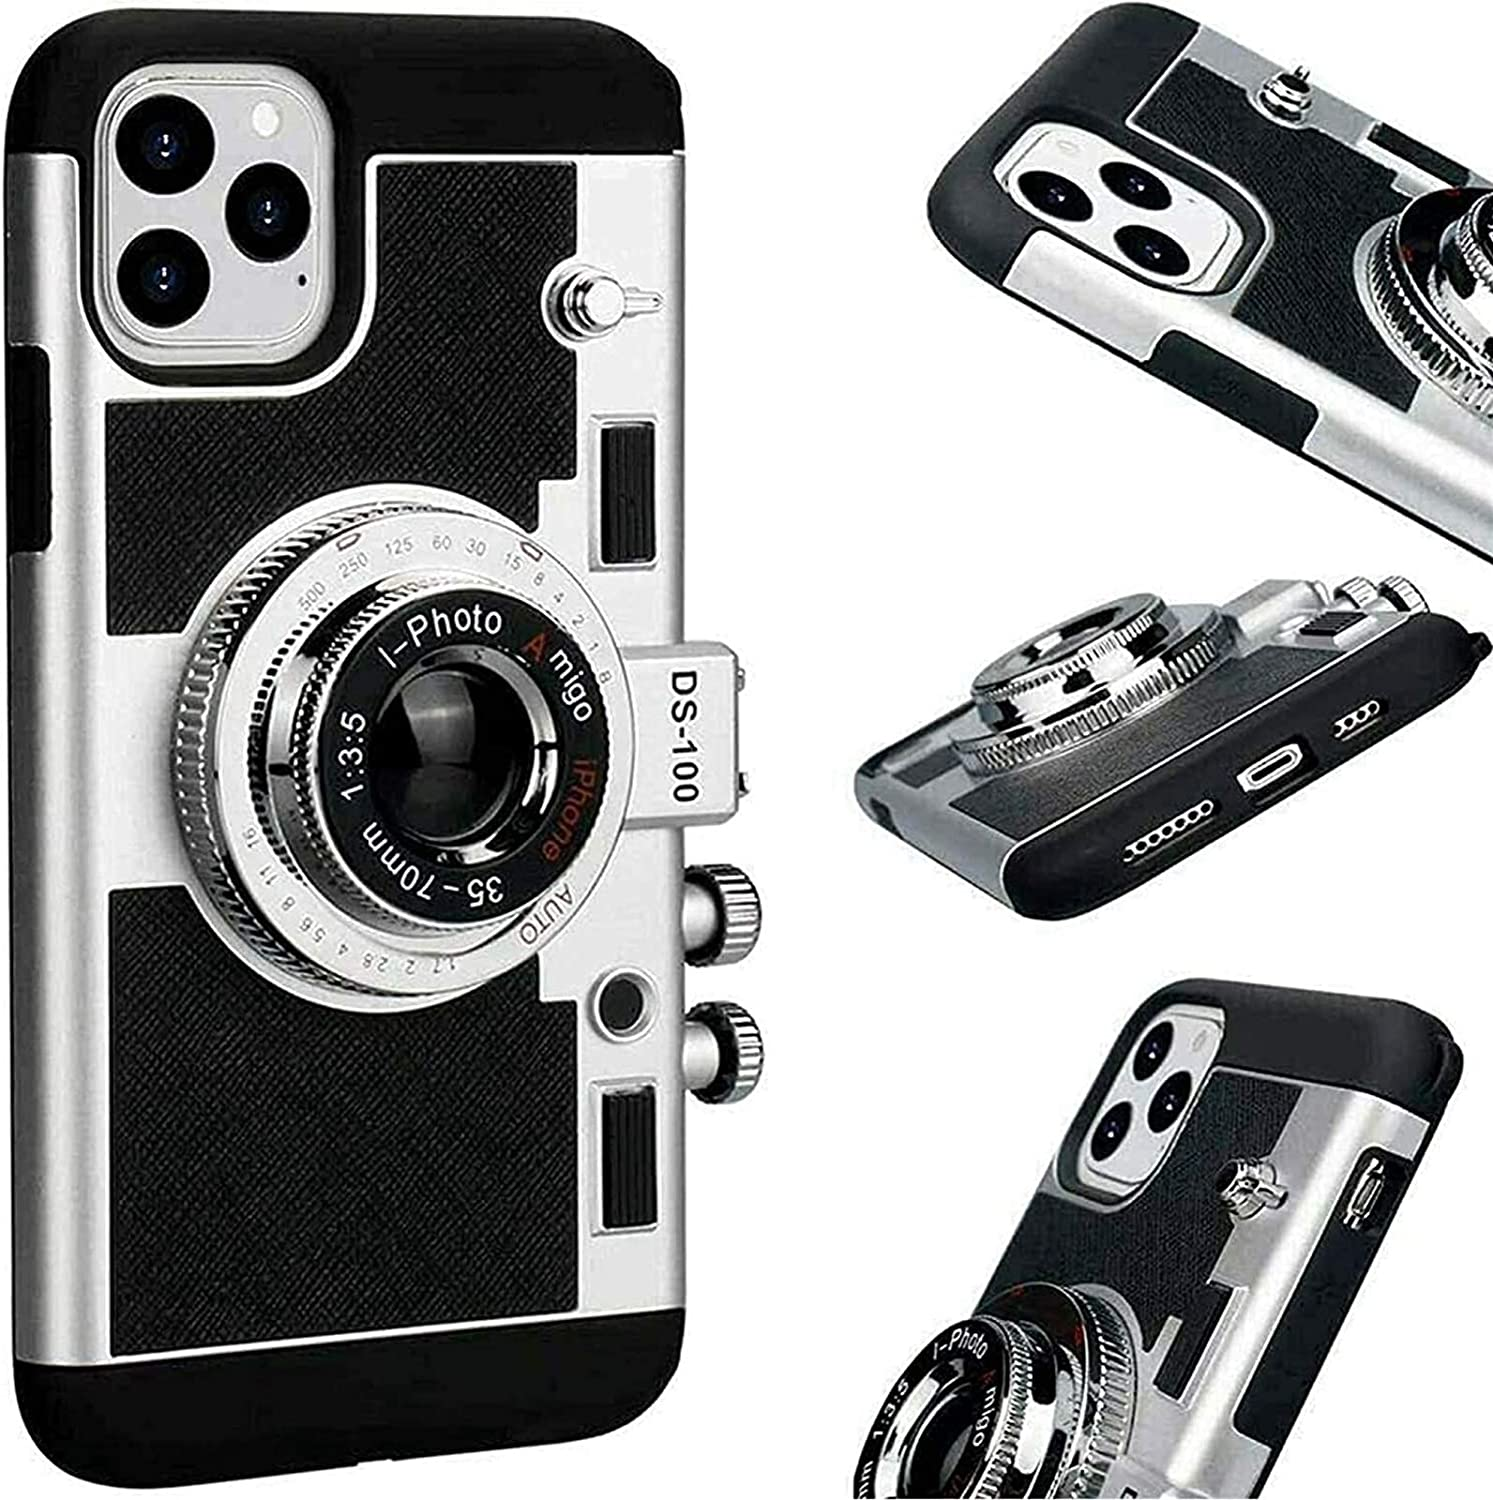 ADGJL Vintage Camera Design Phone Case,Cute 3D Cool Vintage Camera Design Phone Case,Emily in Paris Phone Case with Removable Neck Strap Lanyard (for iPhone 12 PRO)